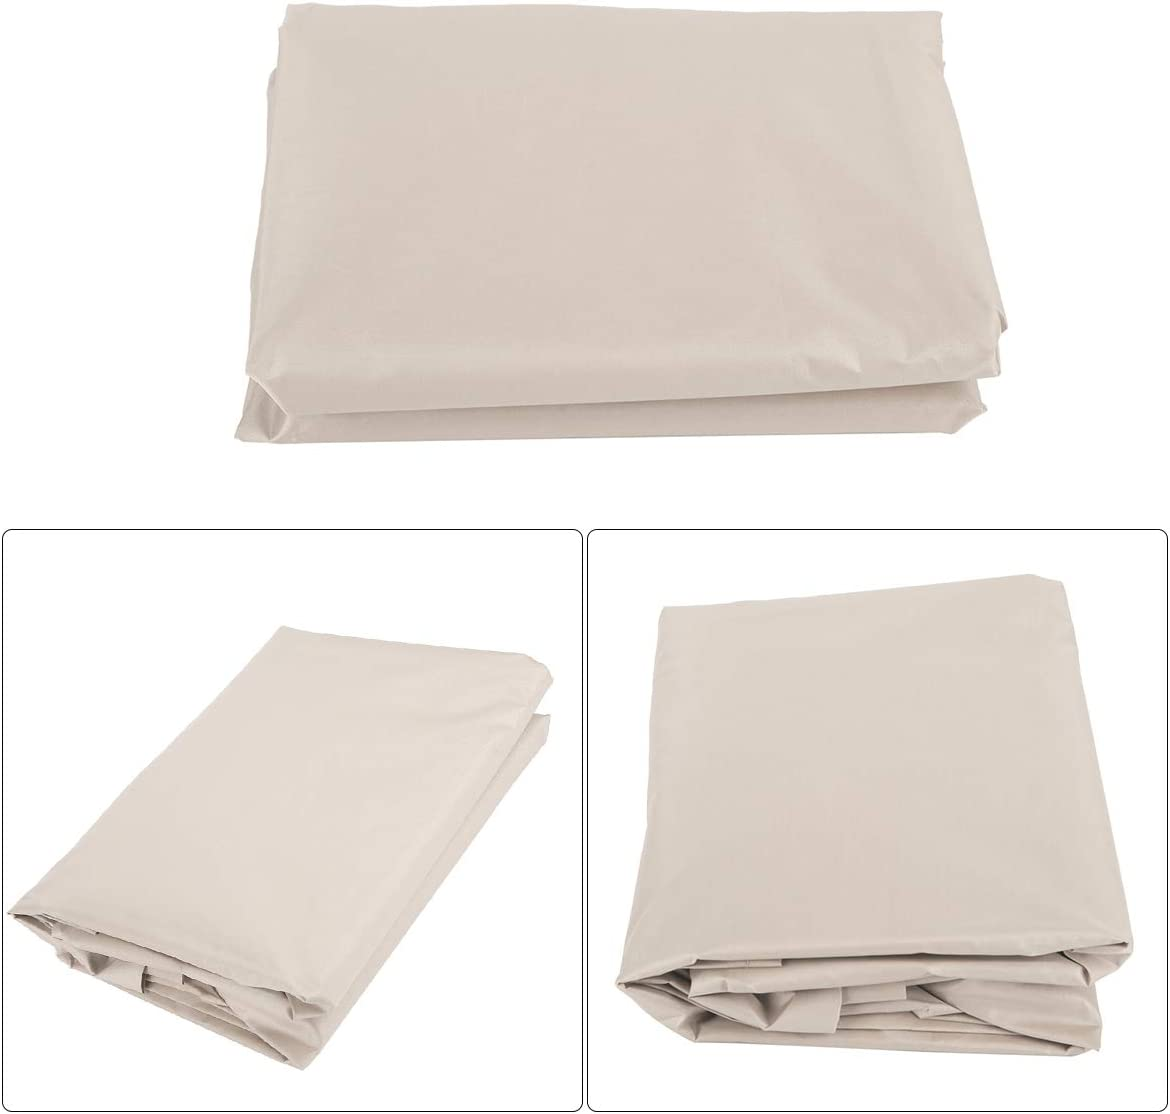 Swing Seat Cover for Garden Patio Swing,Grey//Green//Coffee//Beige DERCLIVE Patio Swing Cover Set Waterproof Swing Canopy Seat Top Cover